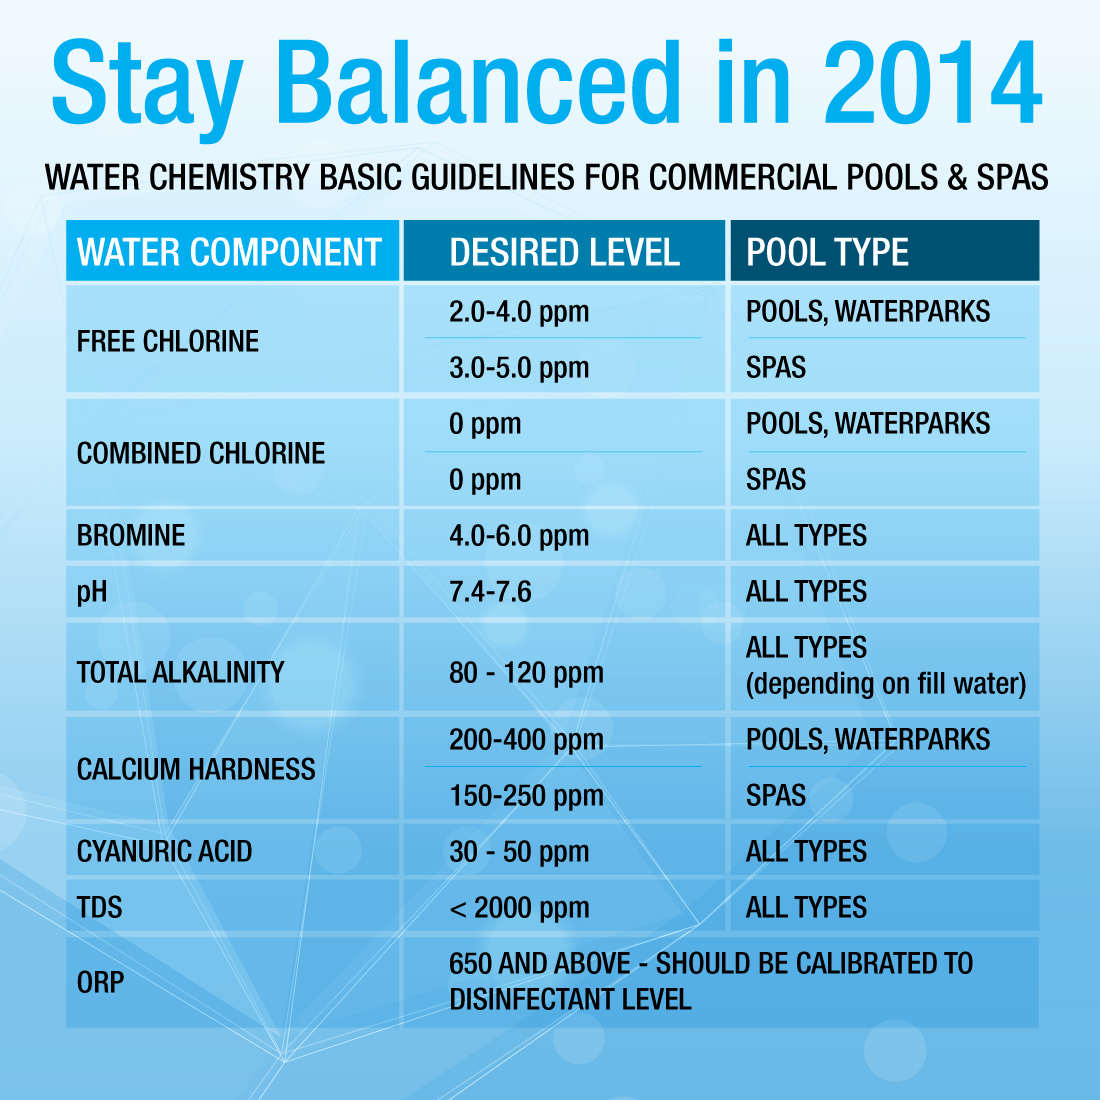 water chemistry guidelines for commercial pools